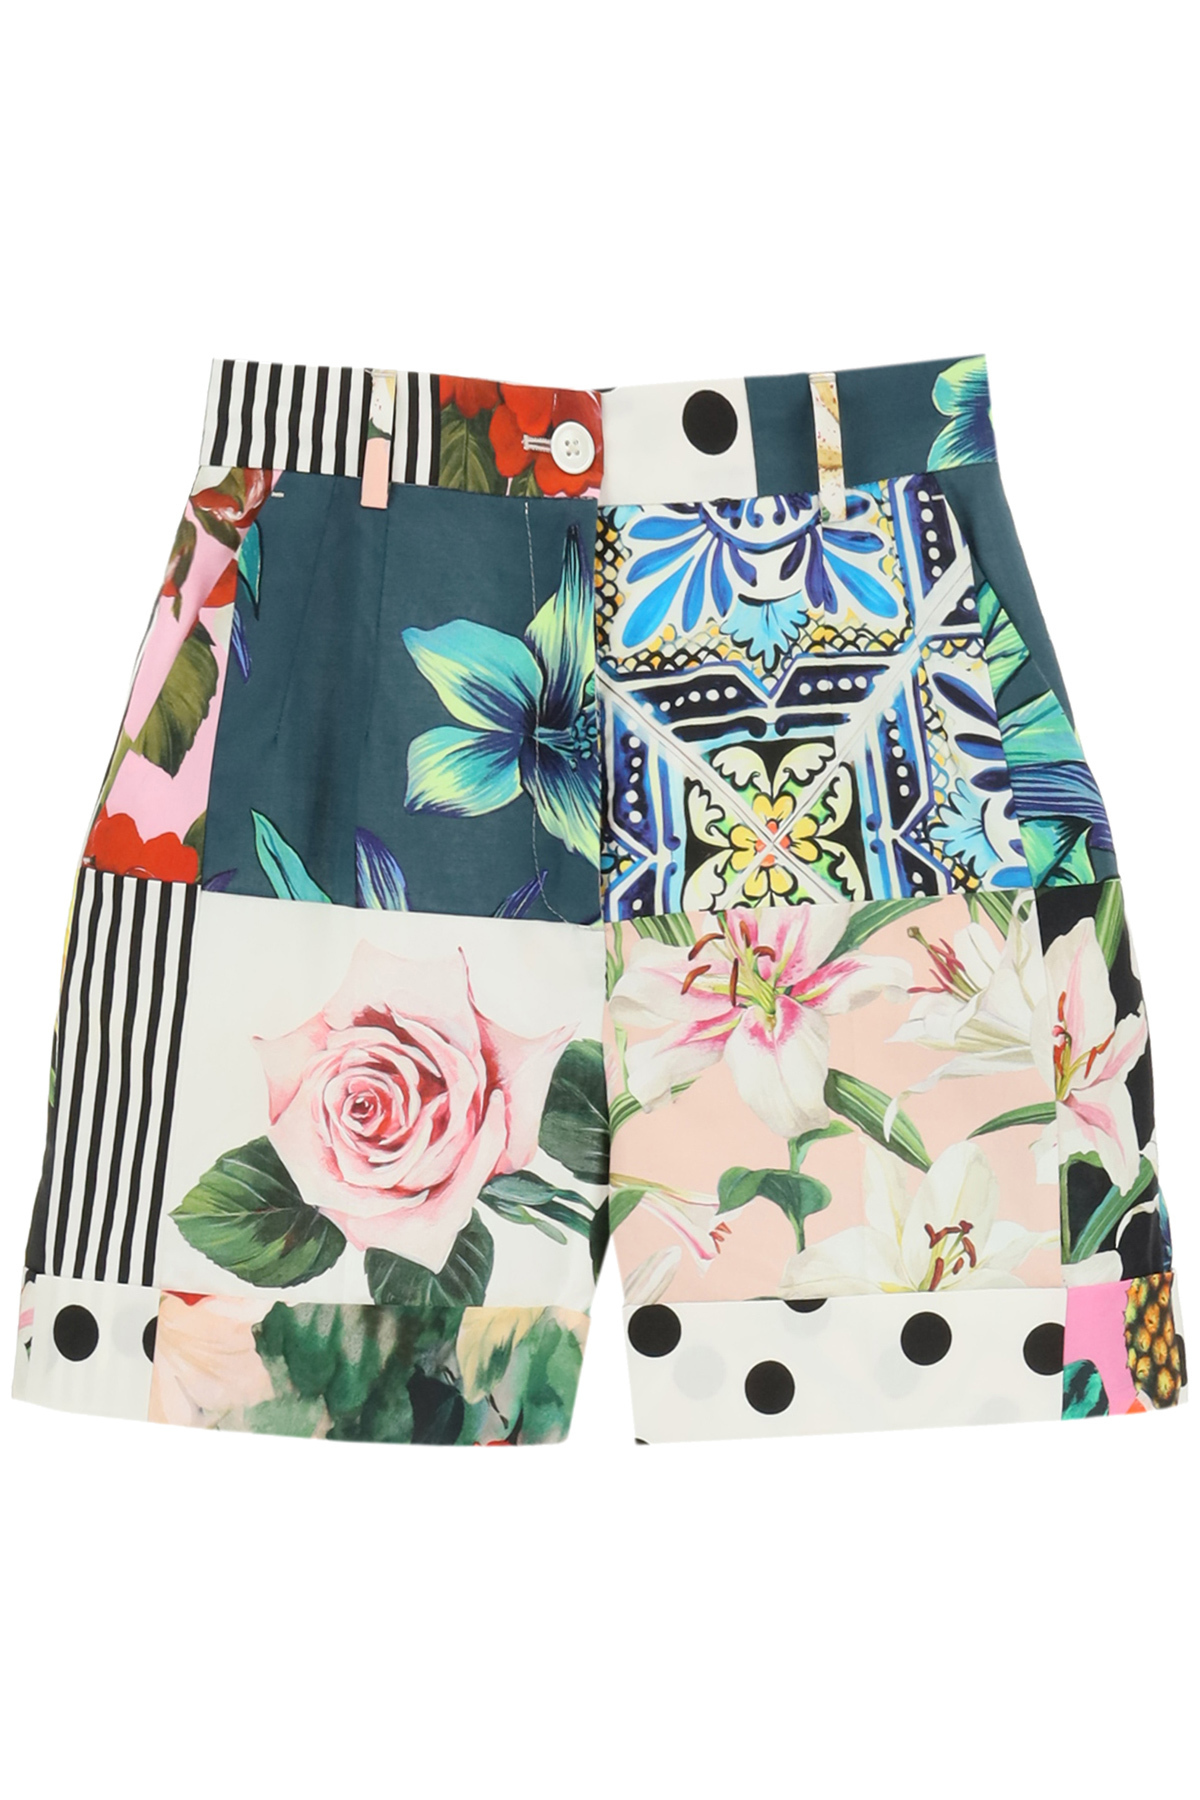 DOLCE & GABBANA PATCHWORK SHORTS 38 White, Pink, Green Cotton